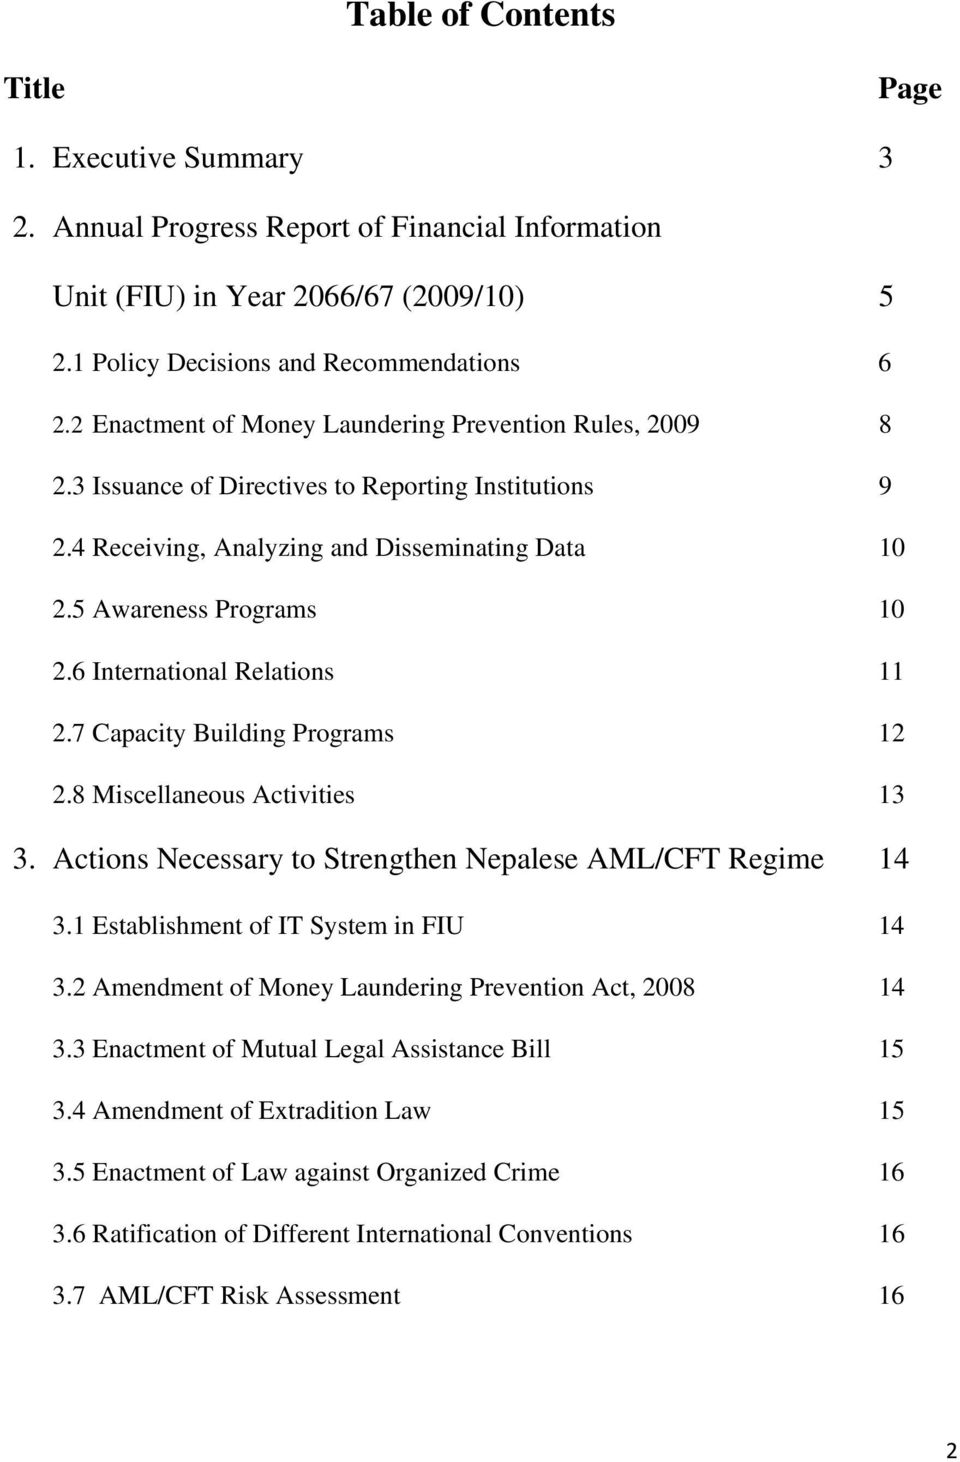 6 International Relations 11 2.7 Capacity Building Programs 12 2.8 Miscellaneous Activities 13 3. Actions Necessary to Strengthen Nepalese AML/CFT Regime 14 3.1 Establishment of IT System in FIU 14 3.